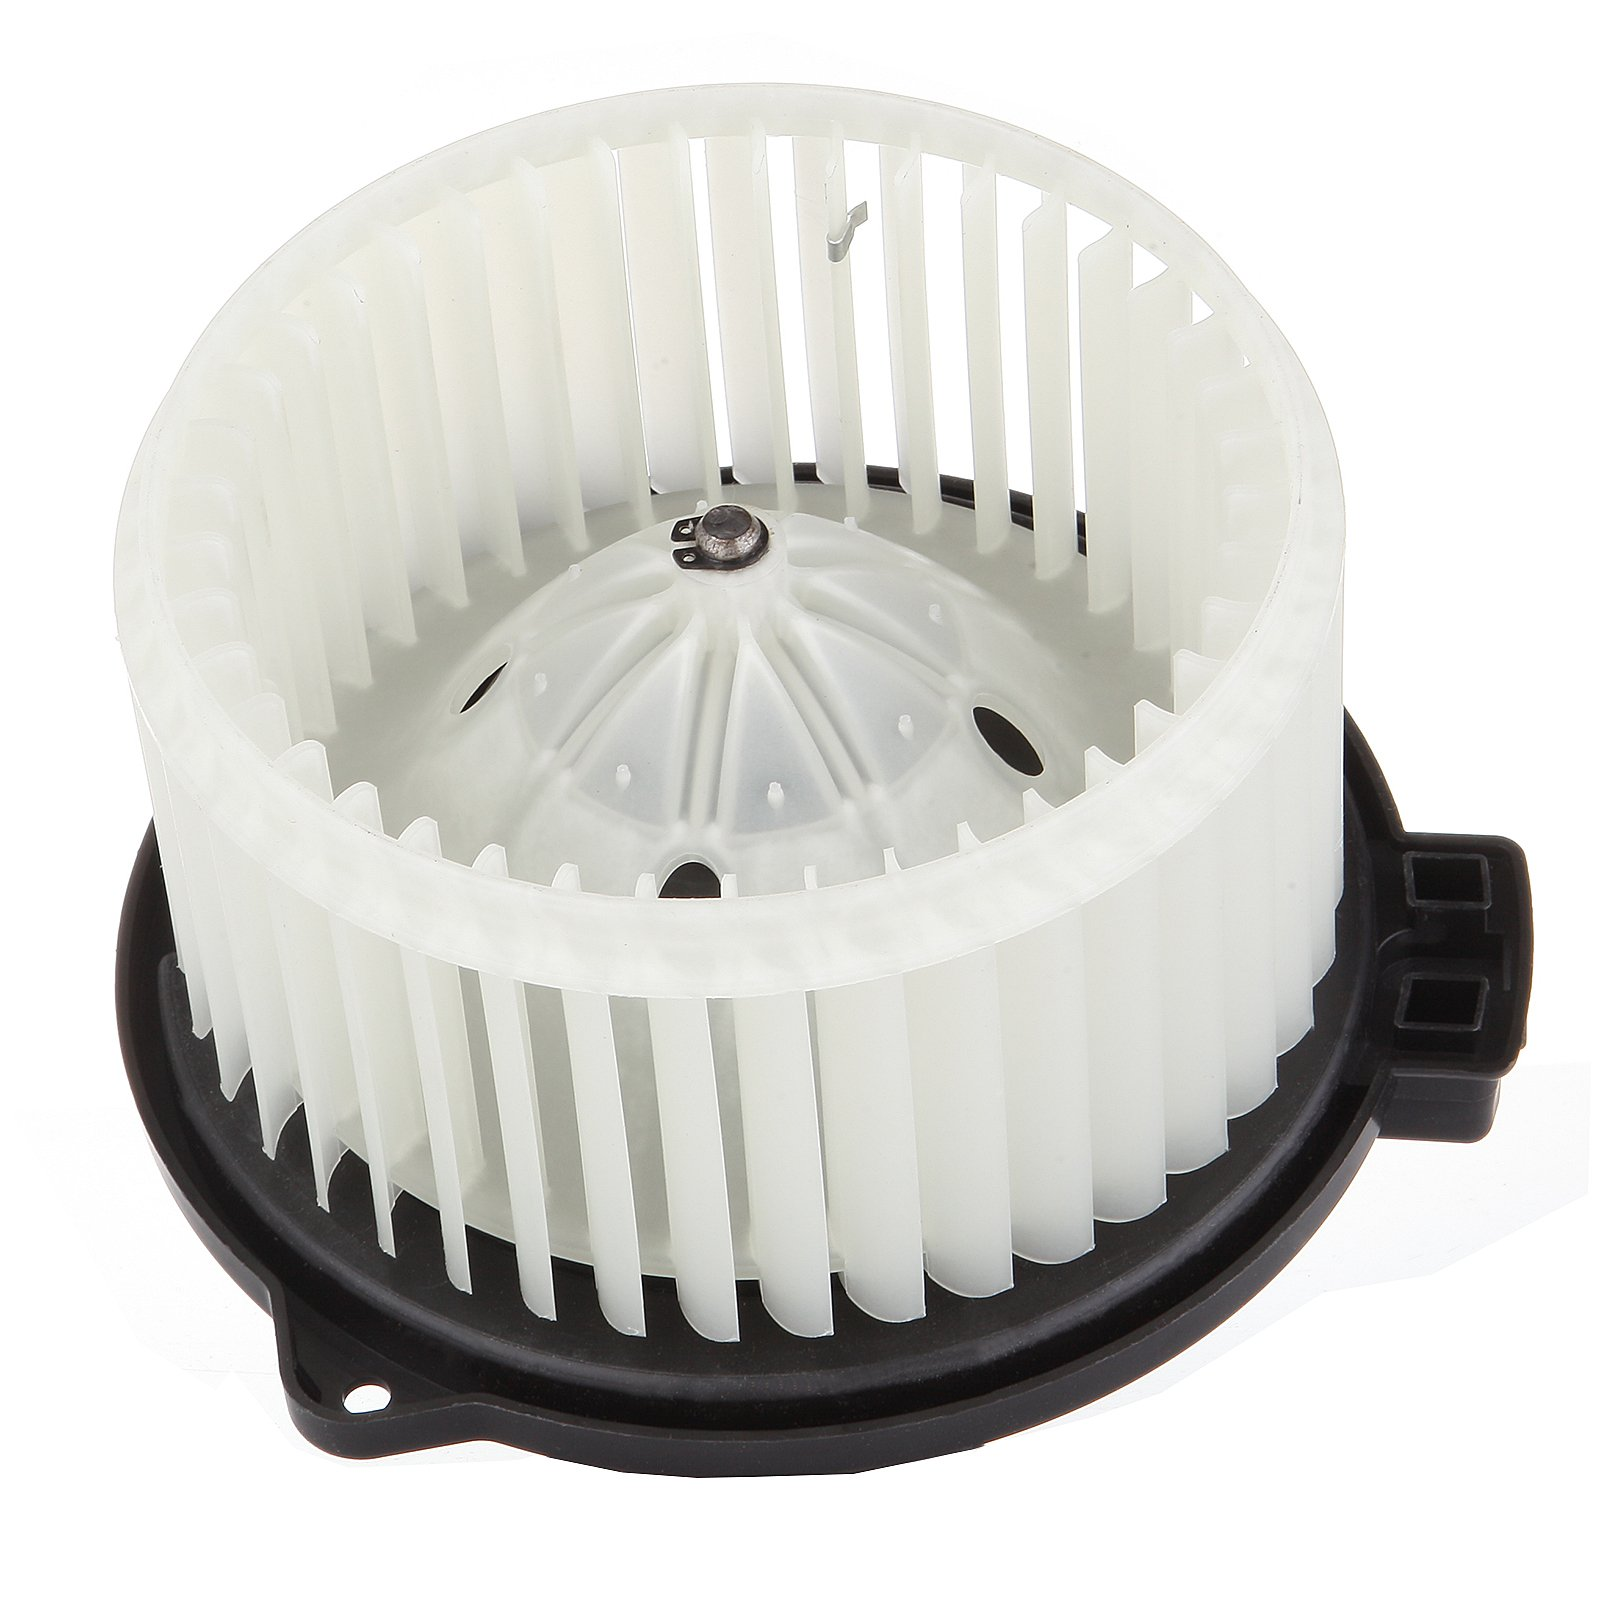 SCITOO ABS Plastic Heater Blower Motor w/Fan HVAC Resistors Blowers Motors Replacement fit for 2004-2005 Lexus RX330/2000-2004 Toyota Avalon/2002-2006 Toyota Camry/2004-2008 Toyota Solara Front